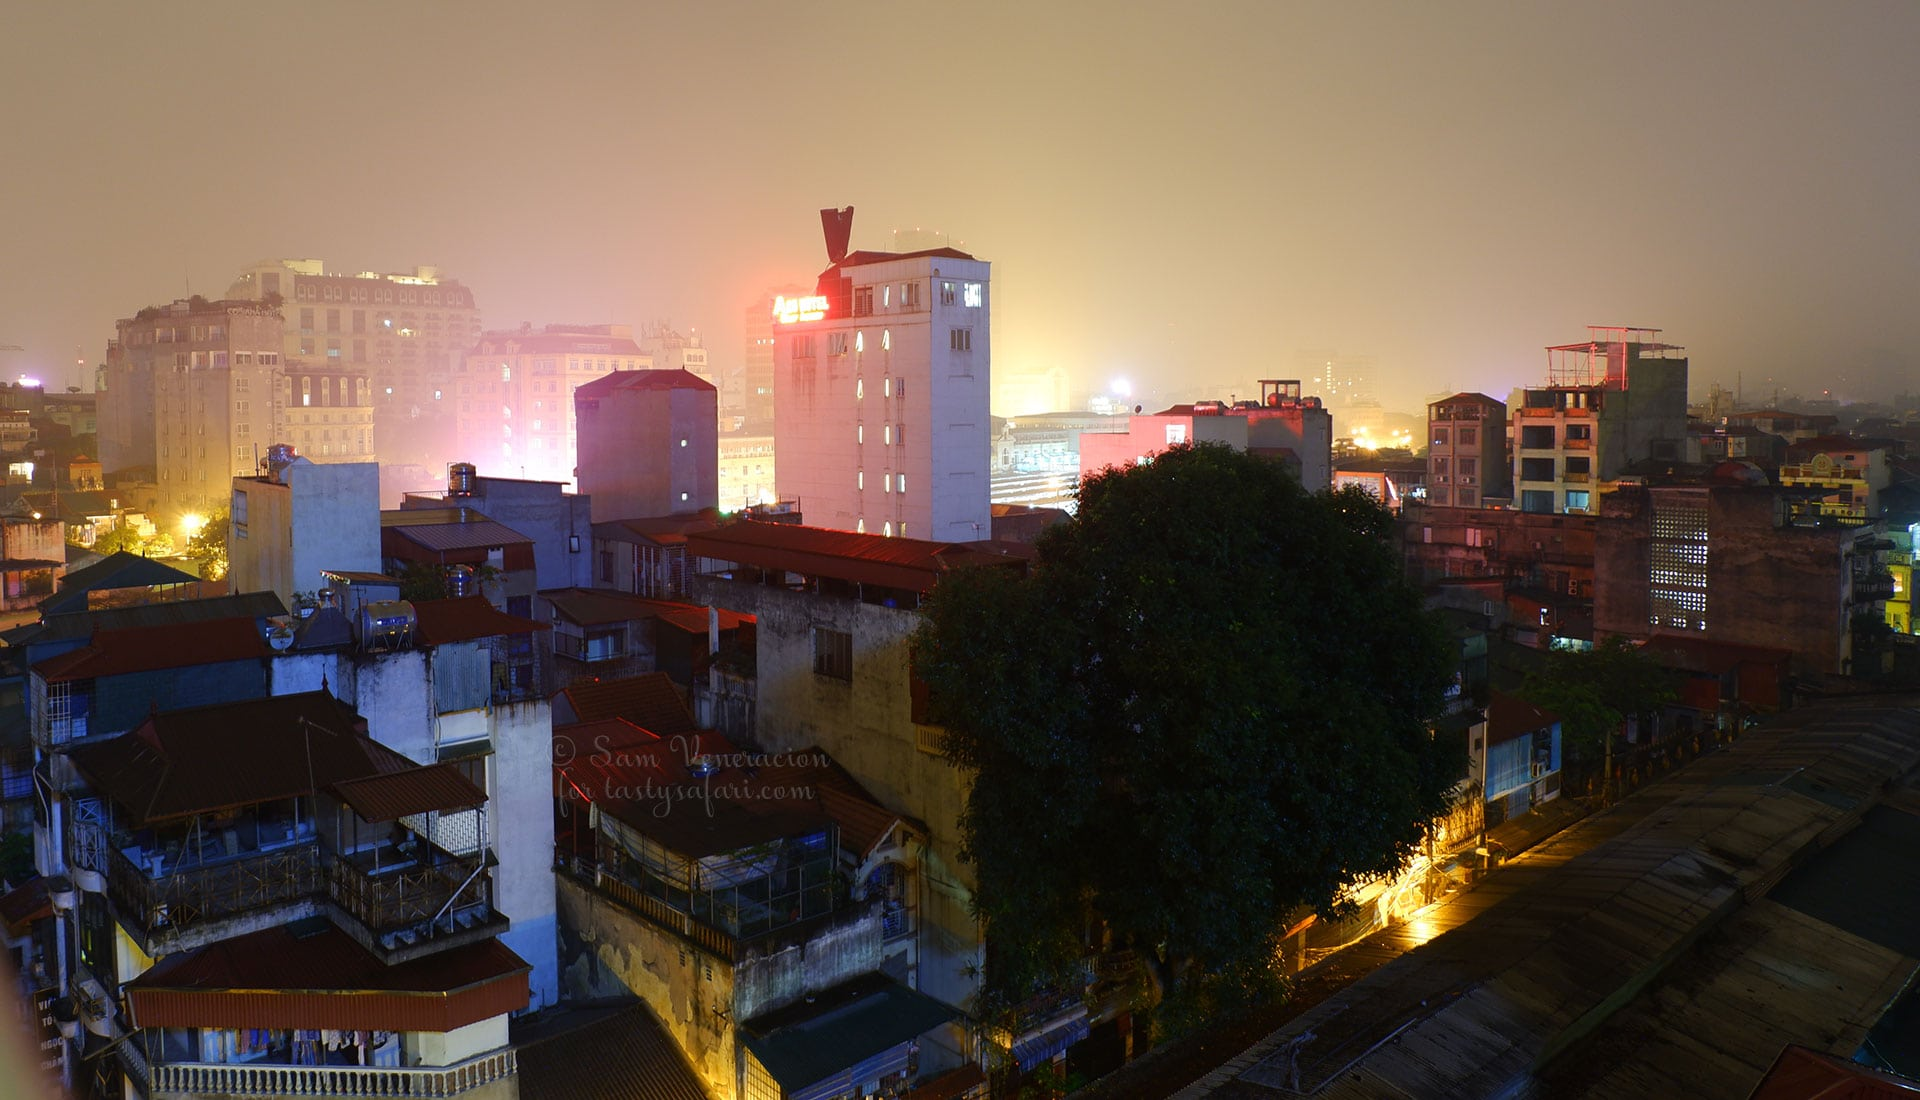 Hanoi at dawn